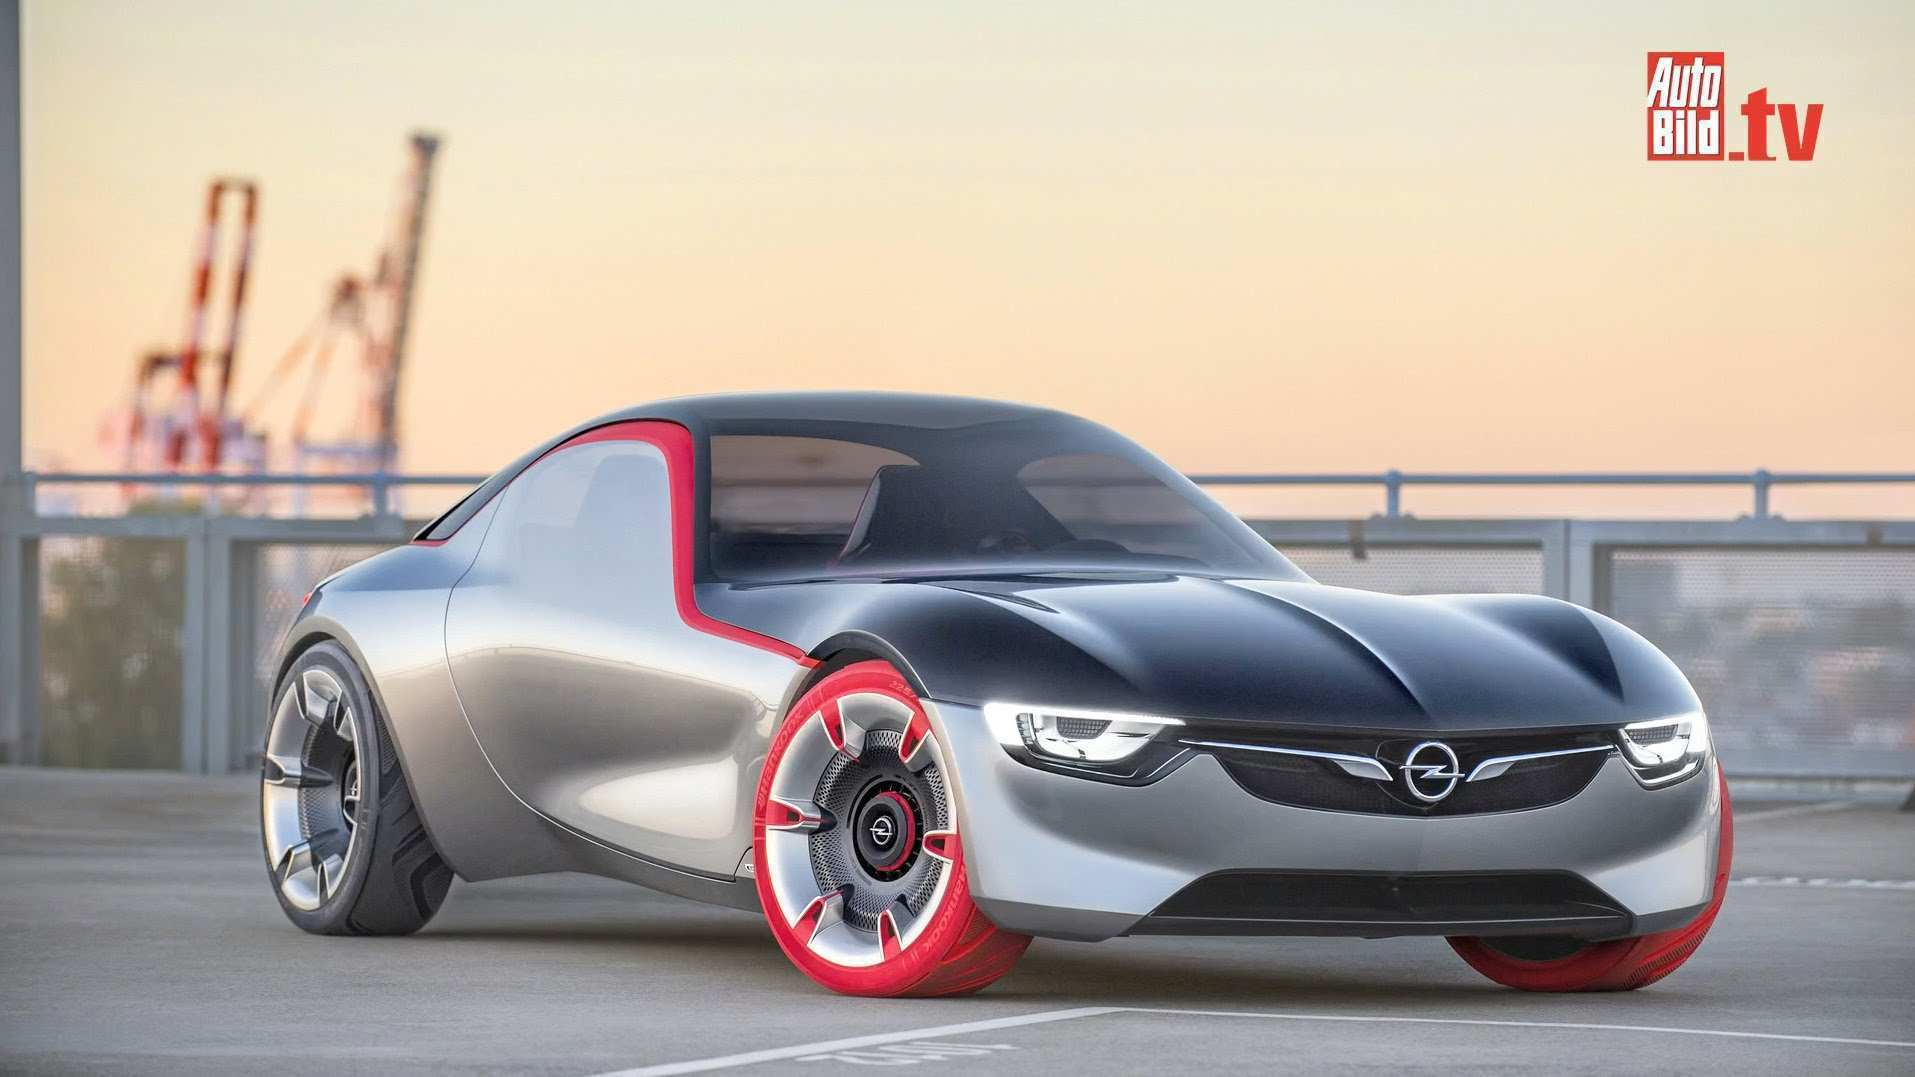 59 Gallery of Opel Coupe 2019 Spy Shoot for Opel Coupe 2019